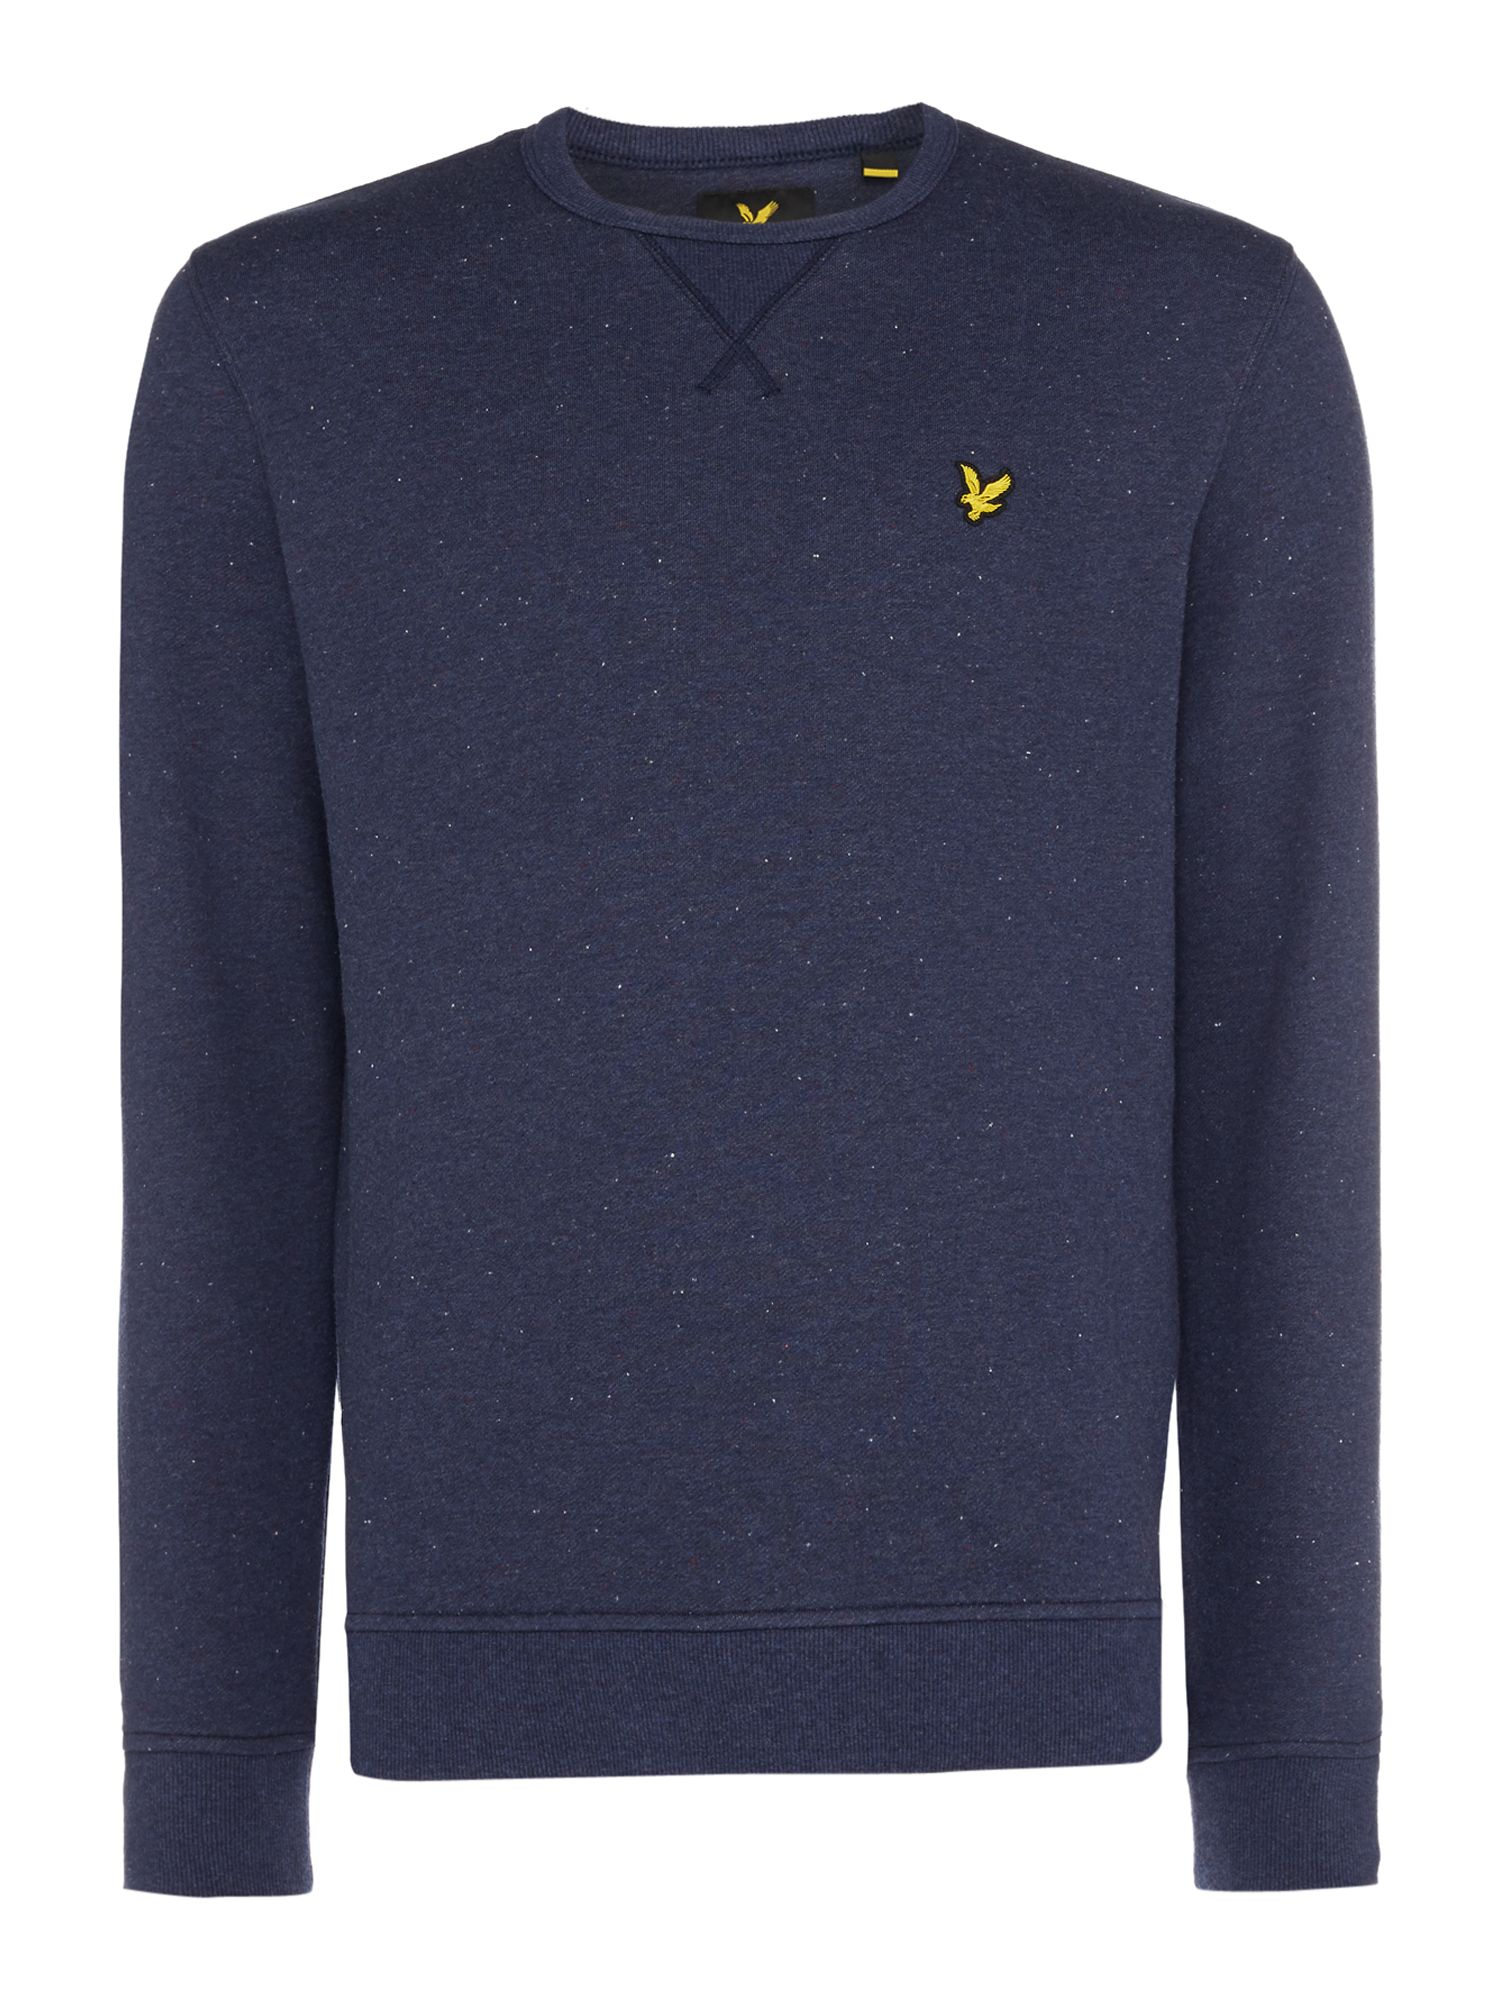 Men's Lyle and Scott Brushed fleck crew neck sweatshirt, Blue